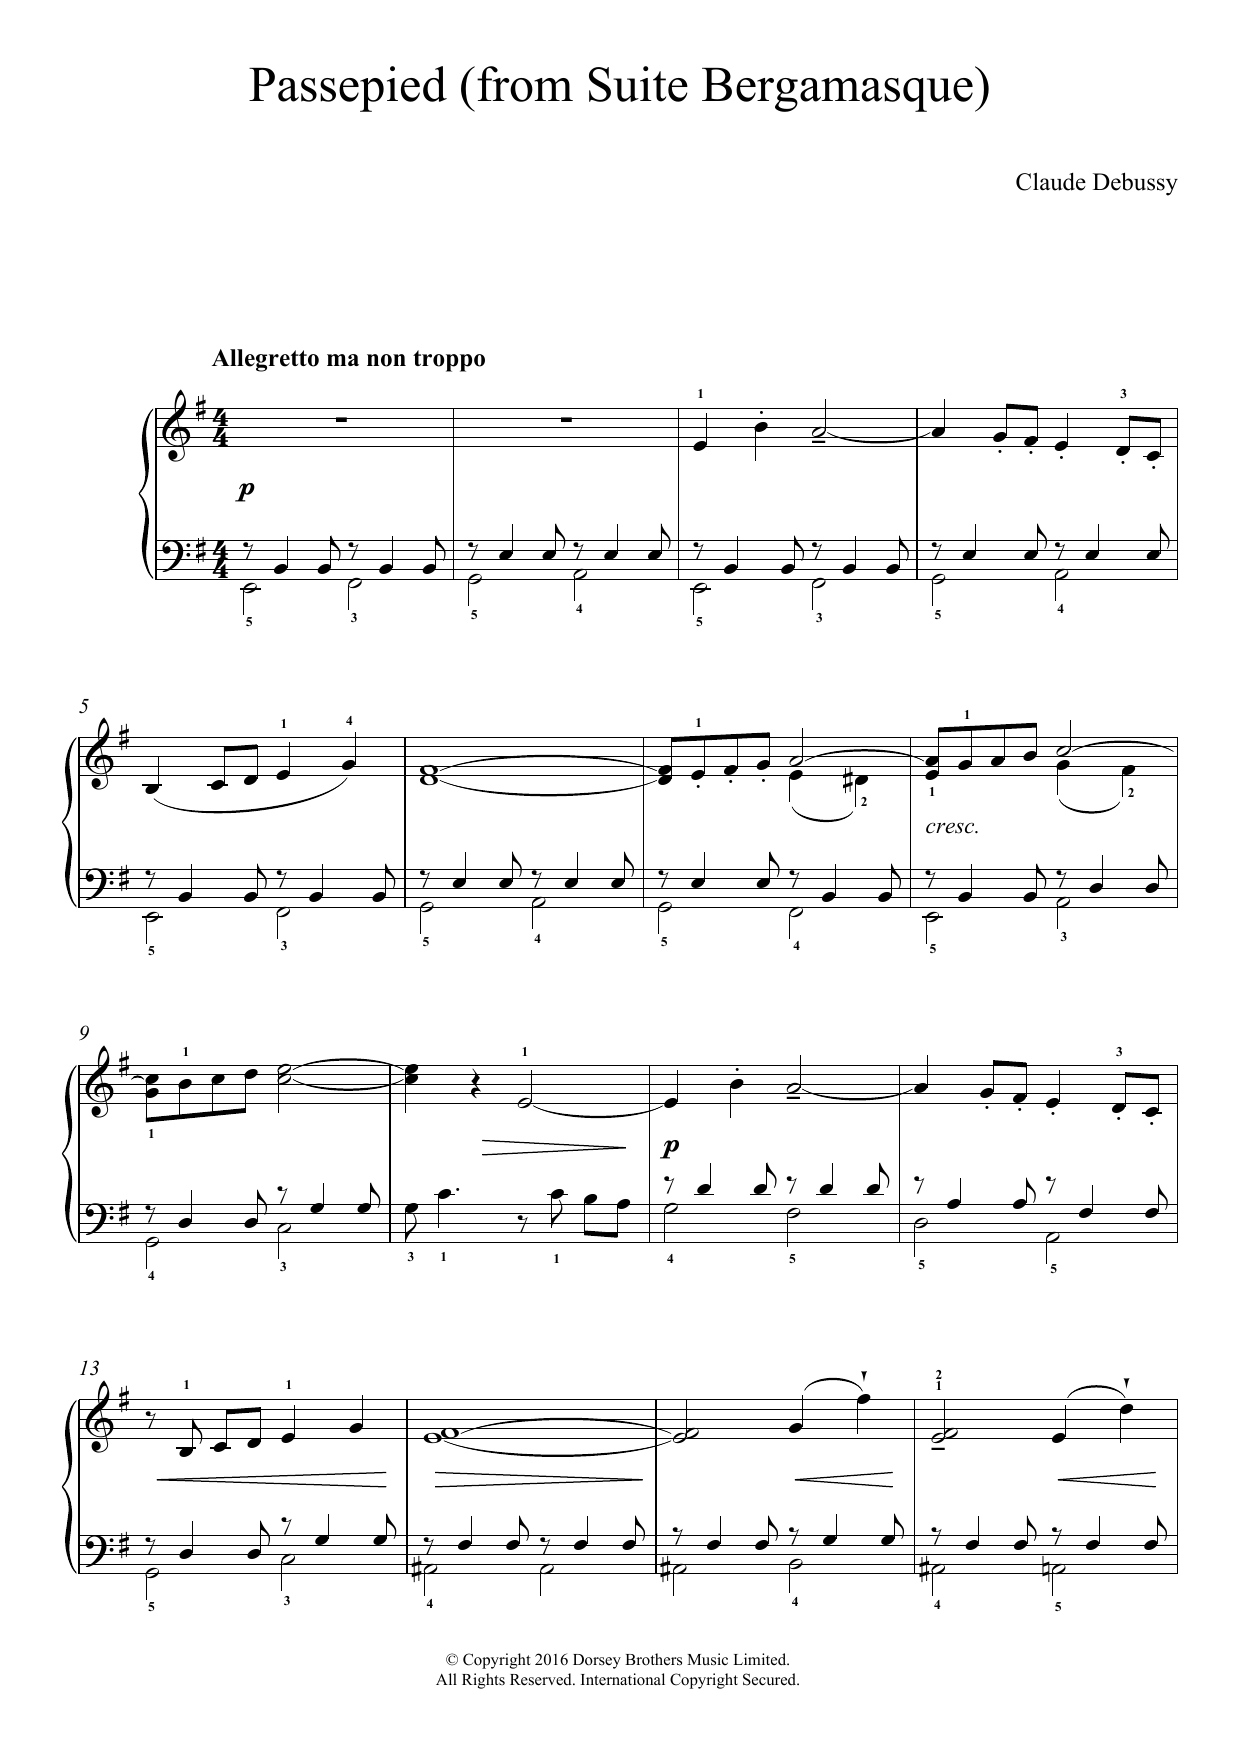 Claude Debussy - Passepied (From Suite Bergamasque)